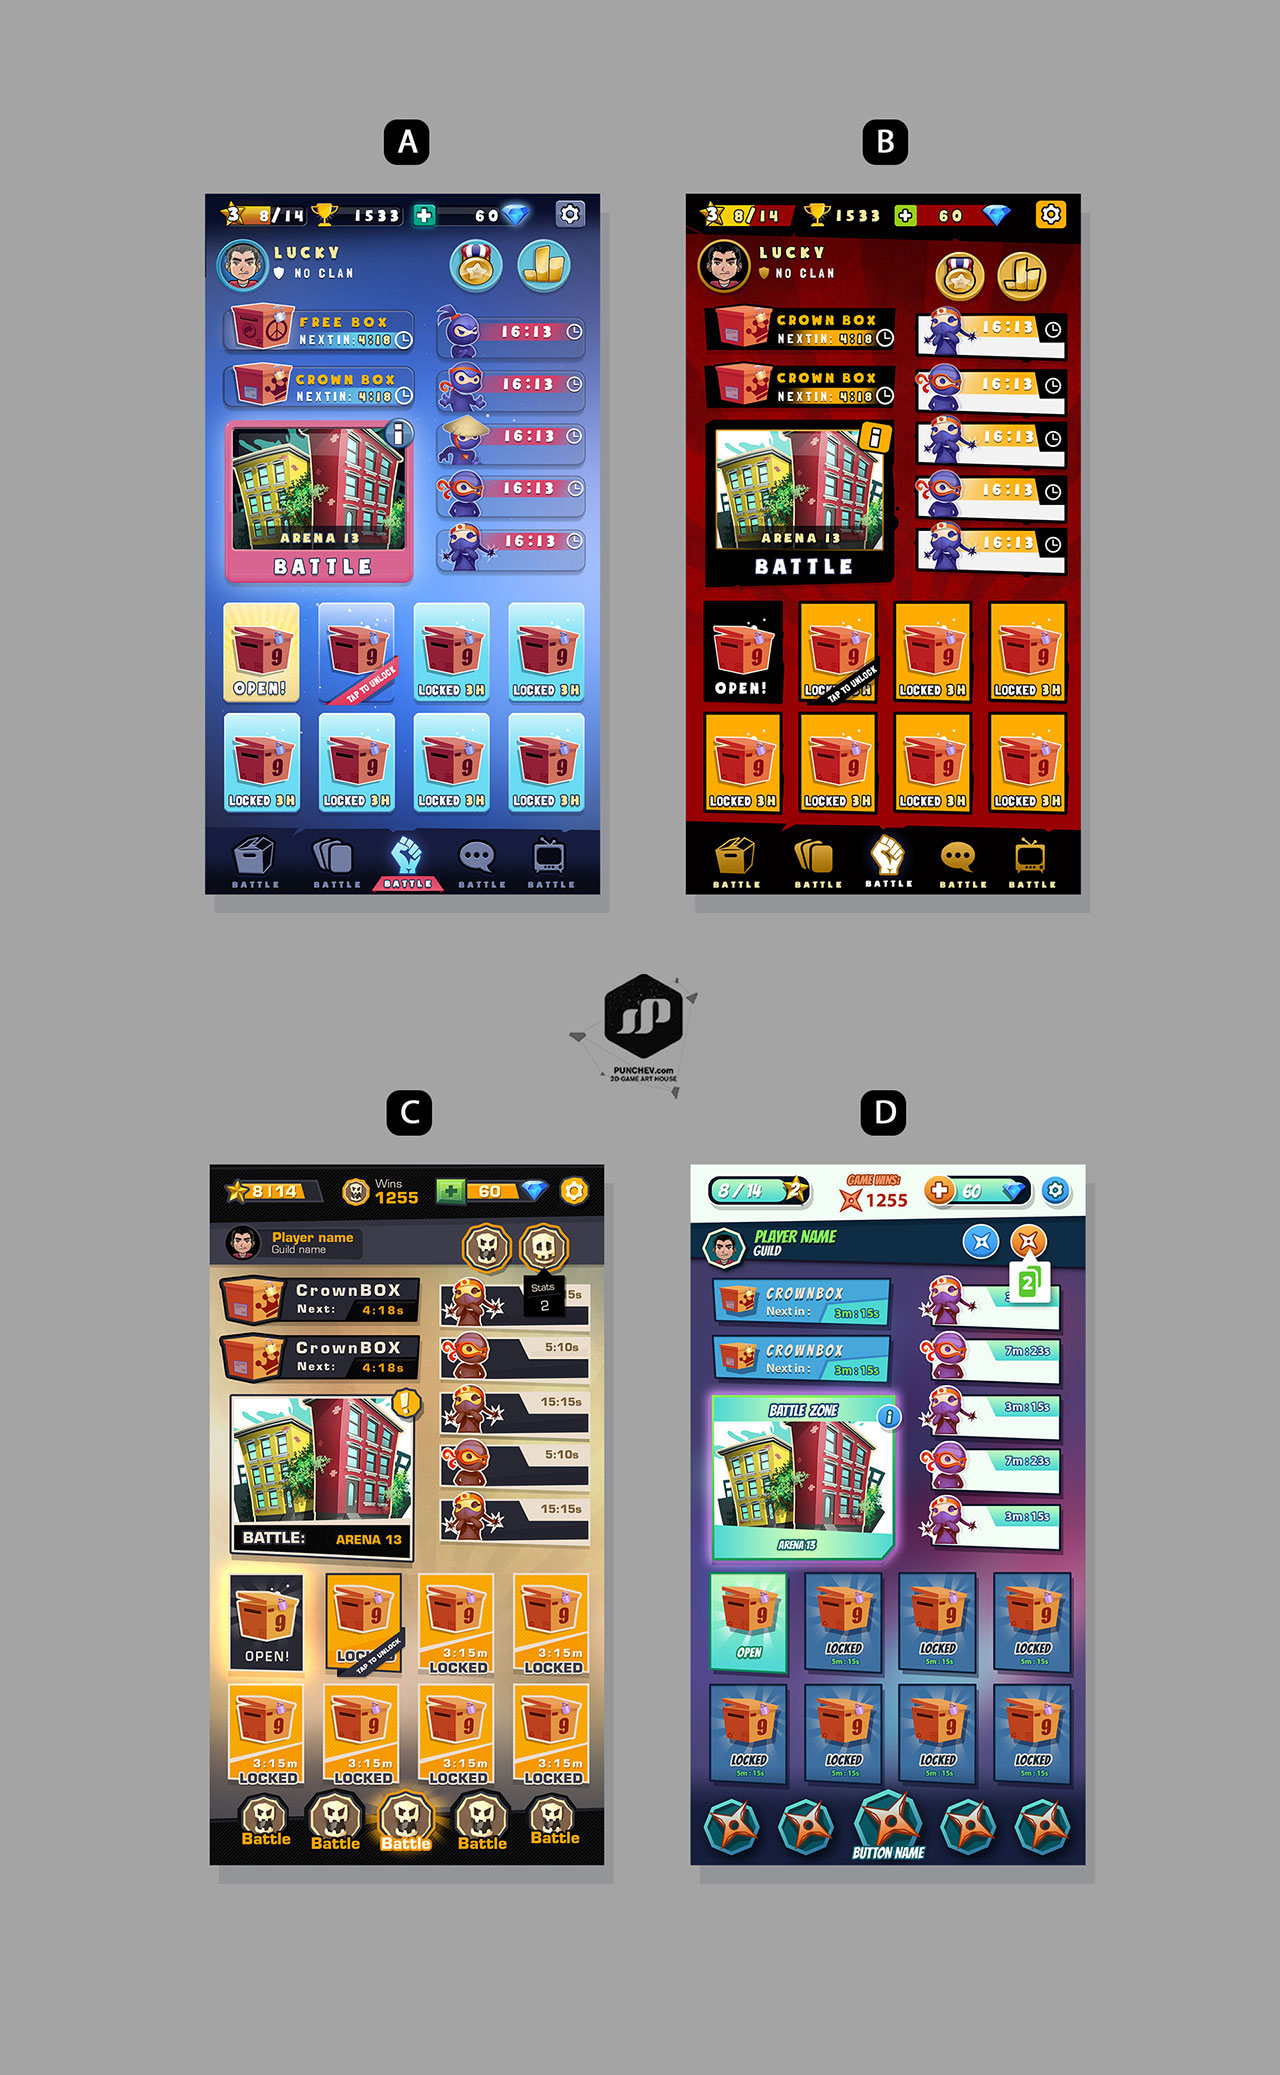 mobile-game-interface-design-ui-ux-concept-gameart-gameinterface-screenD